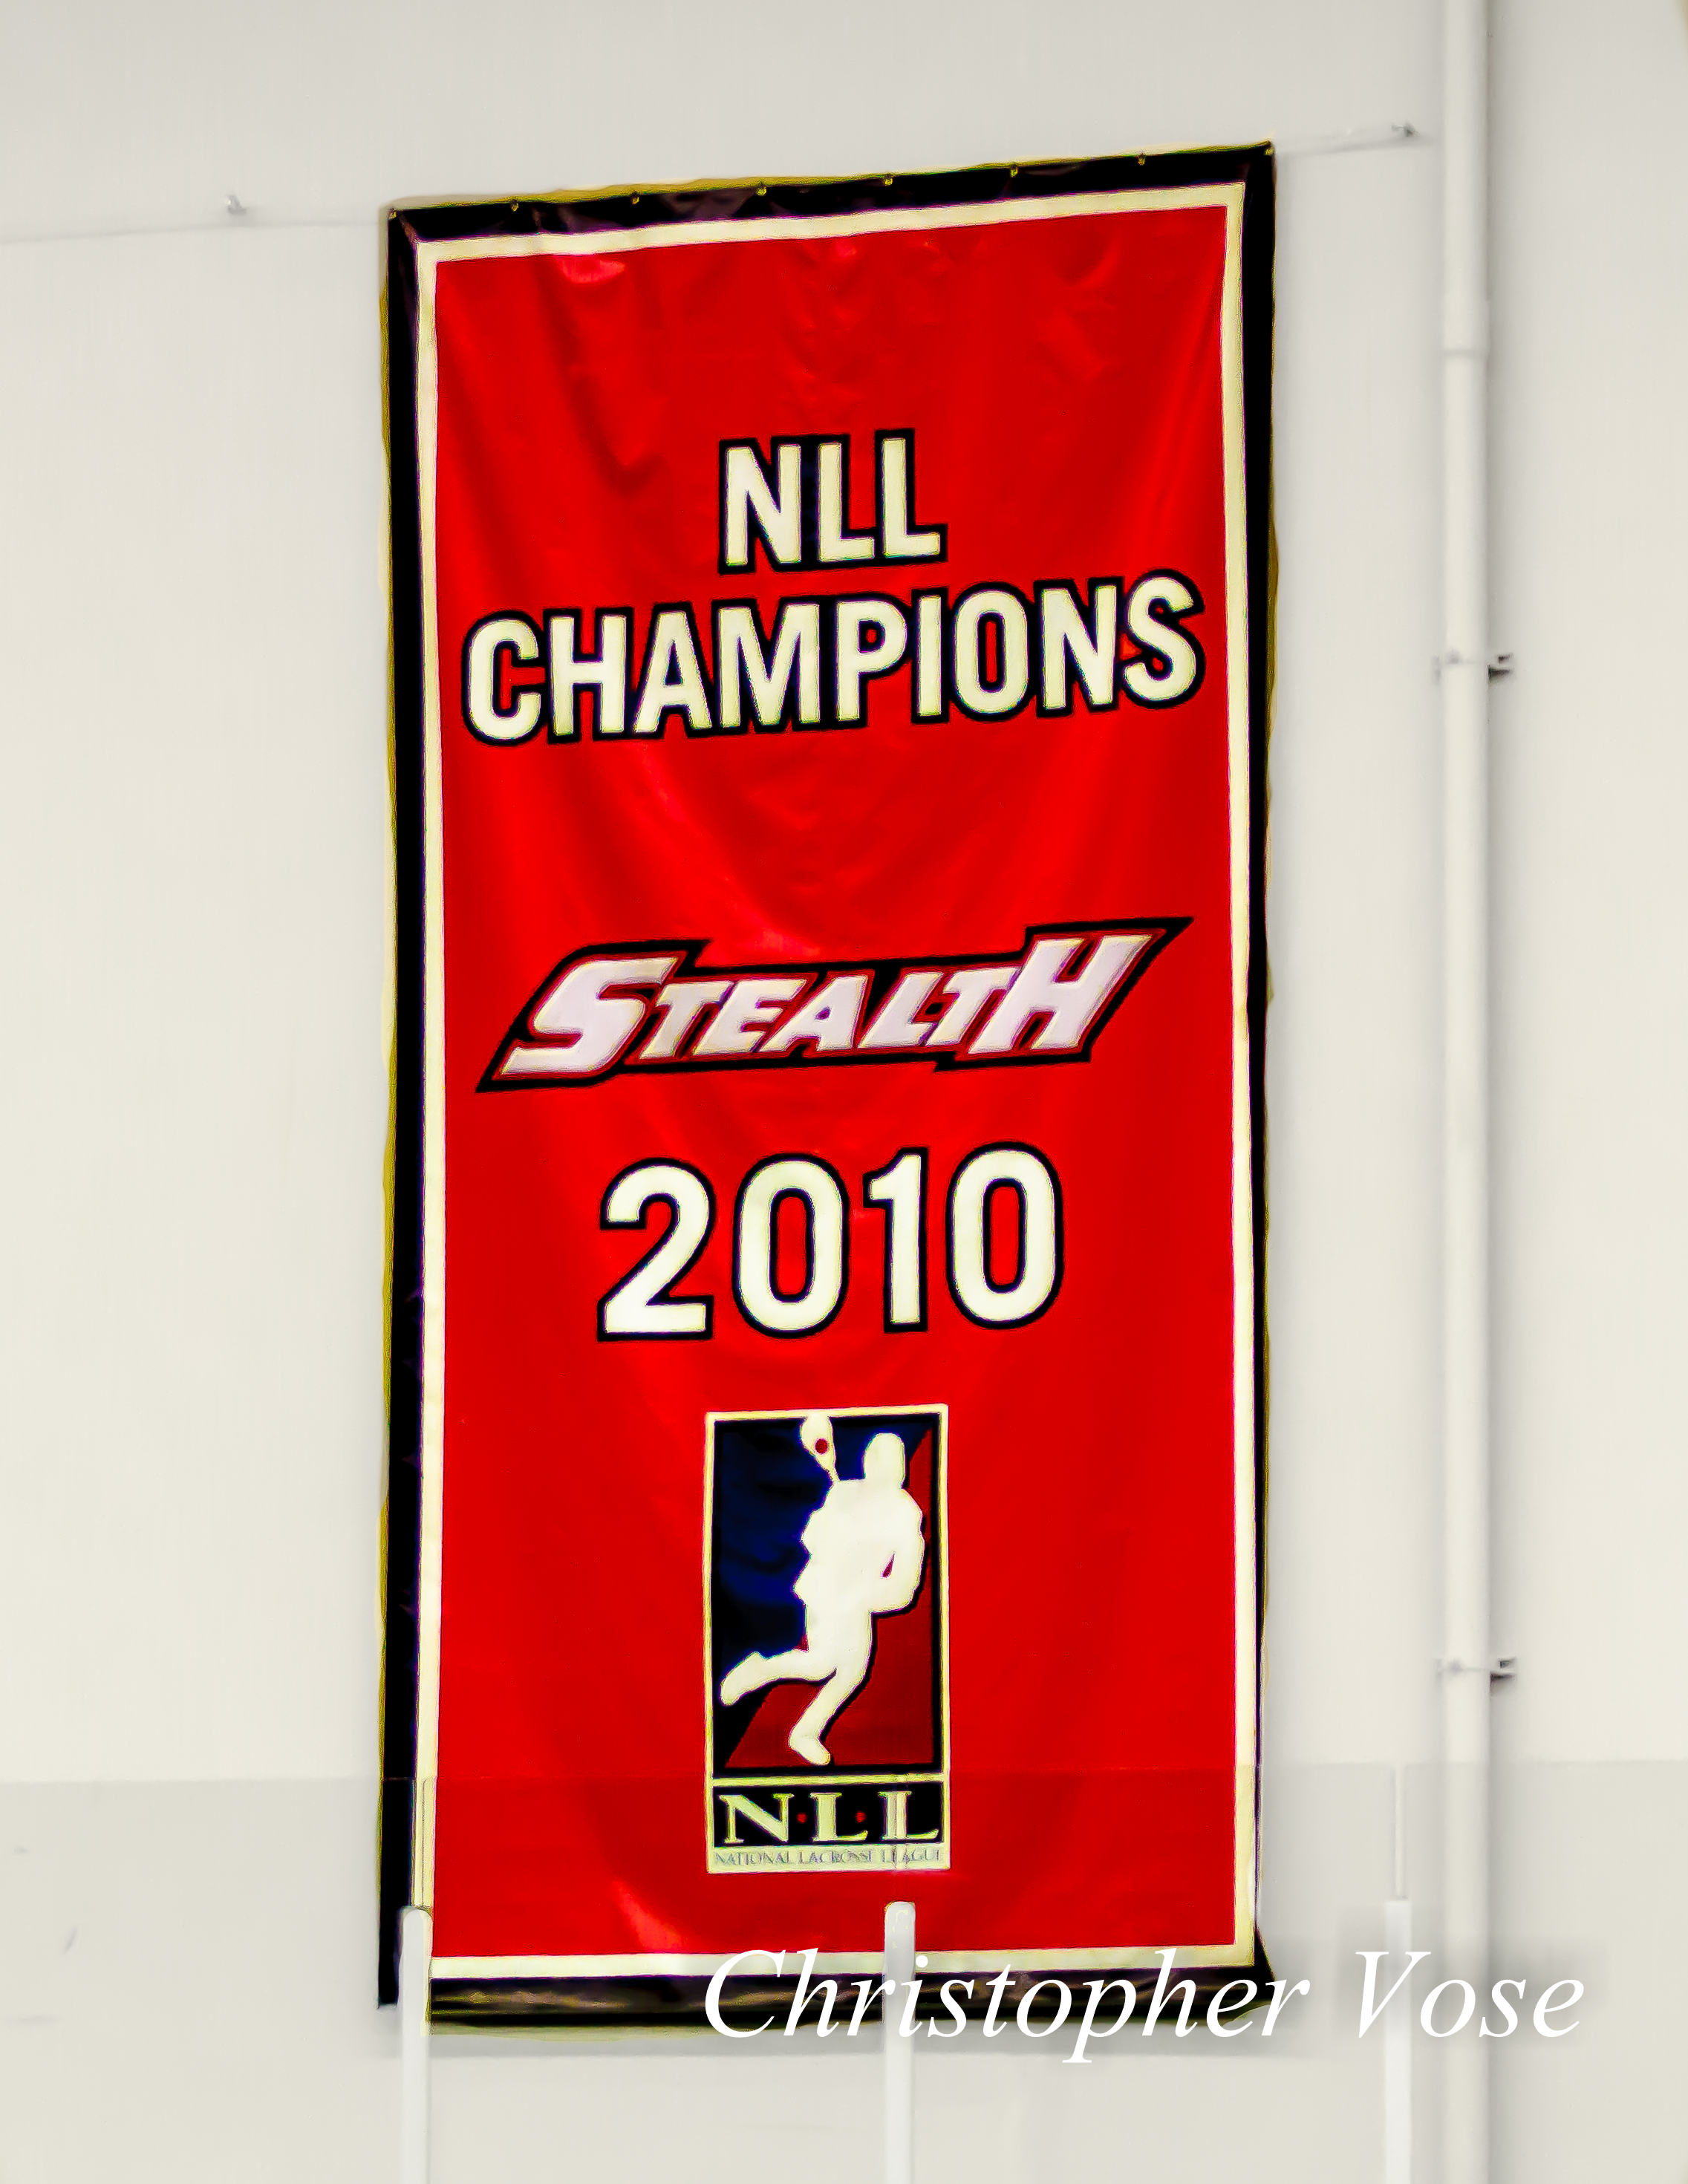 2013-12-21 Vancouver Stealth 2010 NLL Champions Banner.jpg